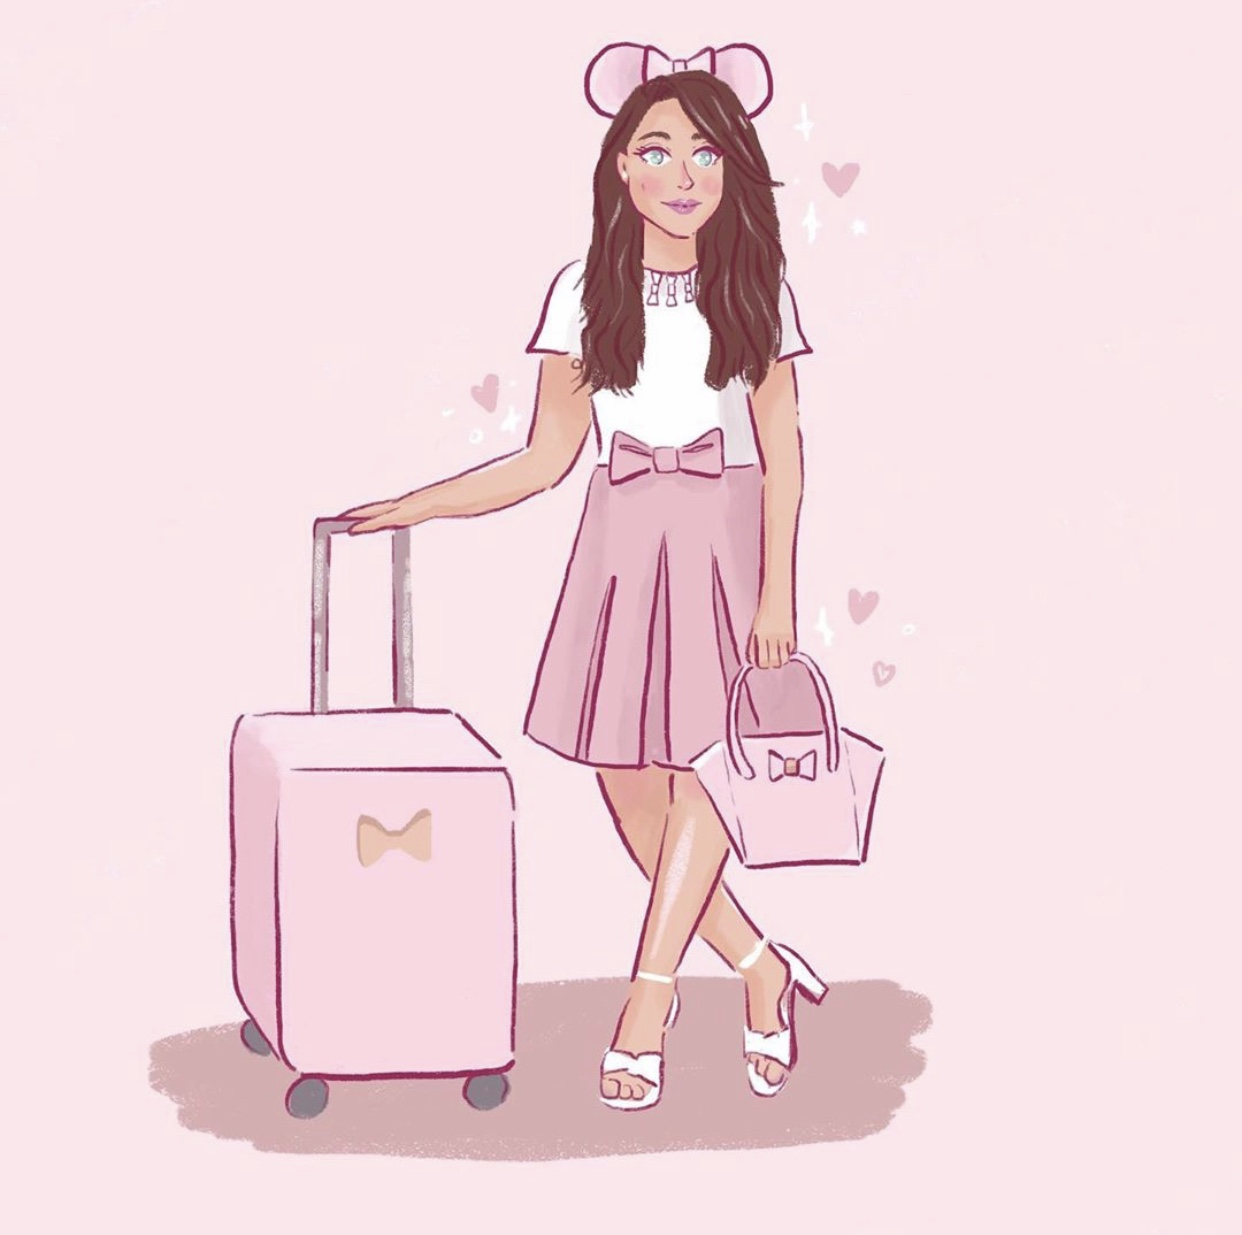 Catherine Marie Pink & Girly Illustration